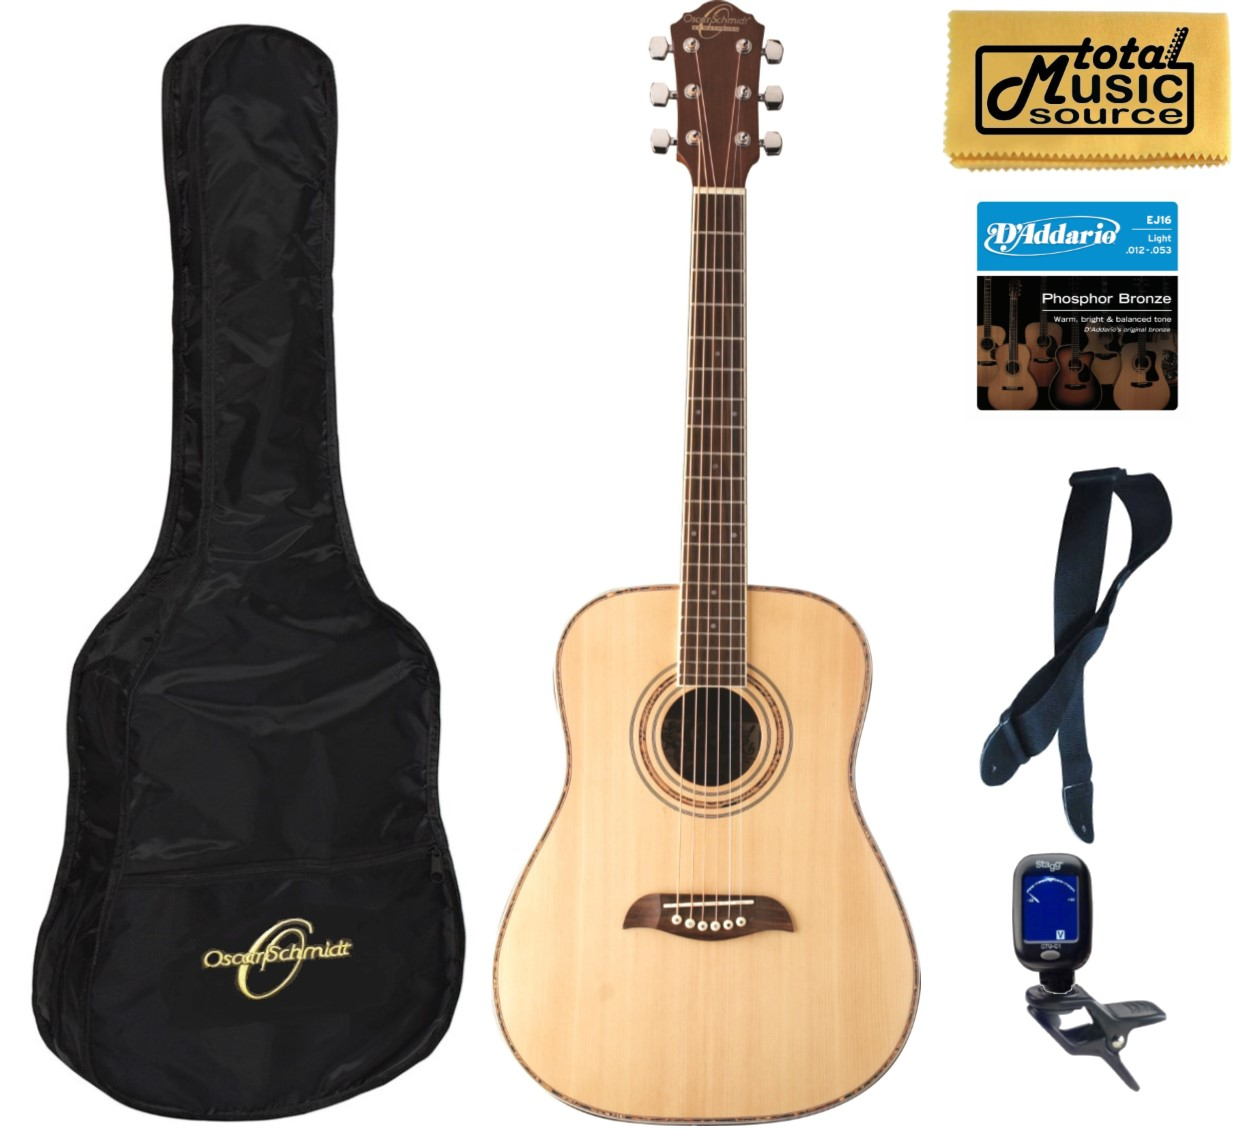 Oscar Schmidt Dreadnought 3/4 Size Acoustic Guitar, Spruce Top, Bundle W/ Bag OG1, OG1 BAGPACK